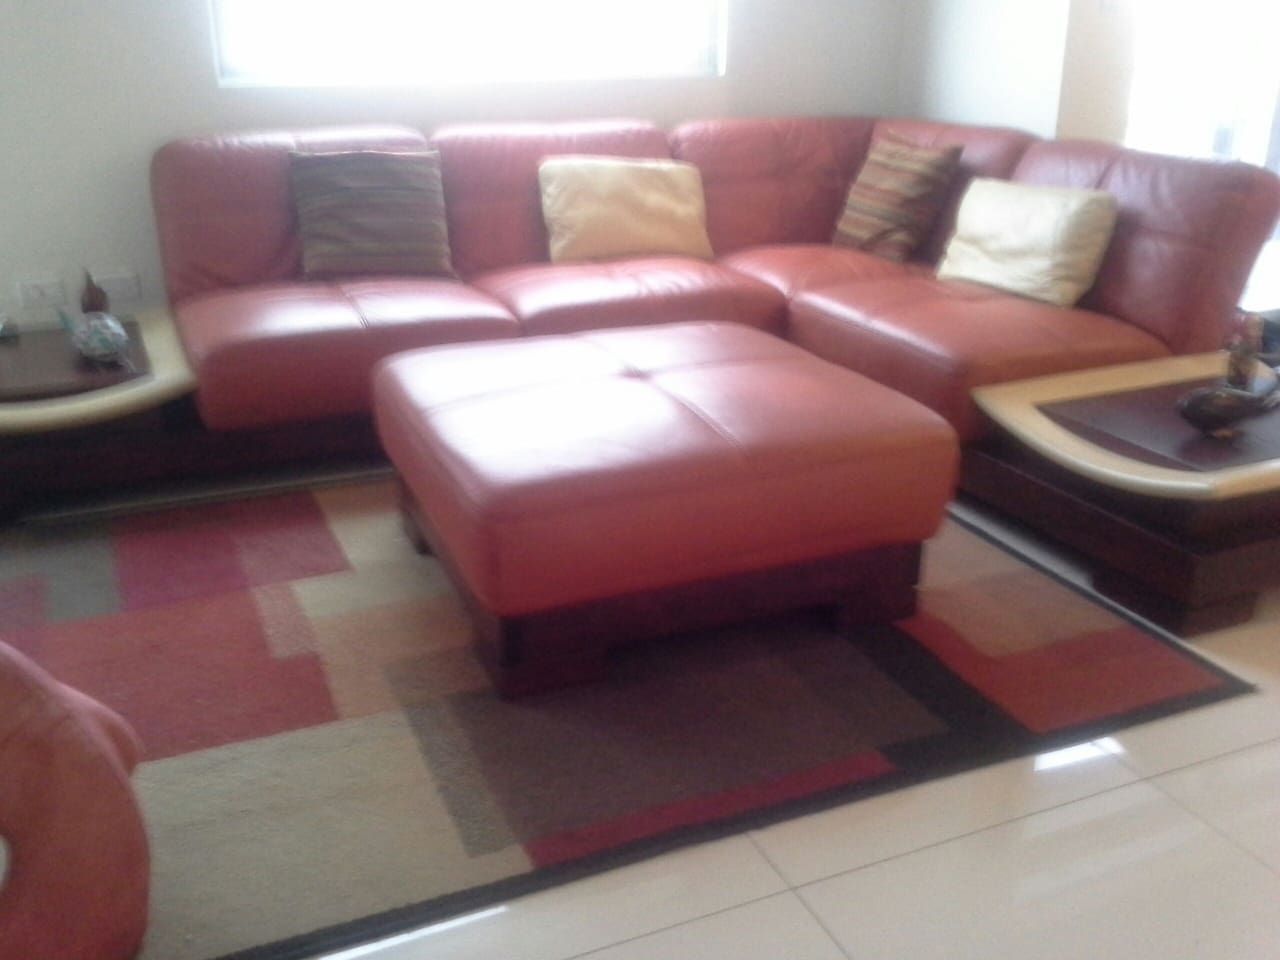 comfortable living room with nice leather couch and good lighting.